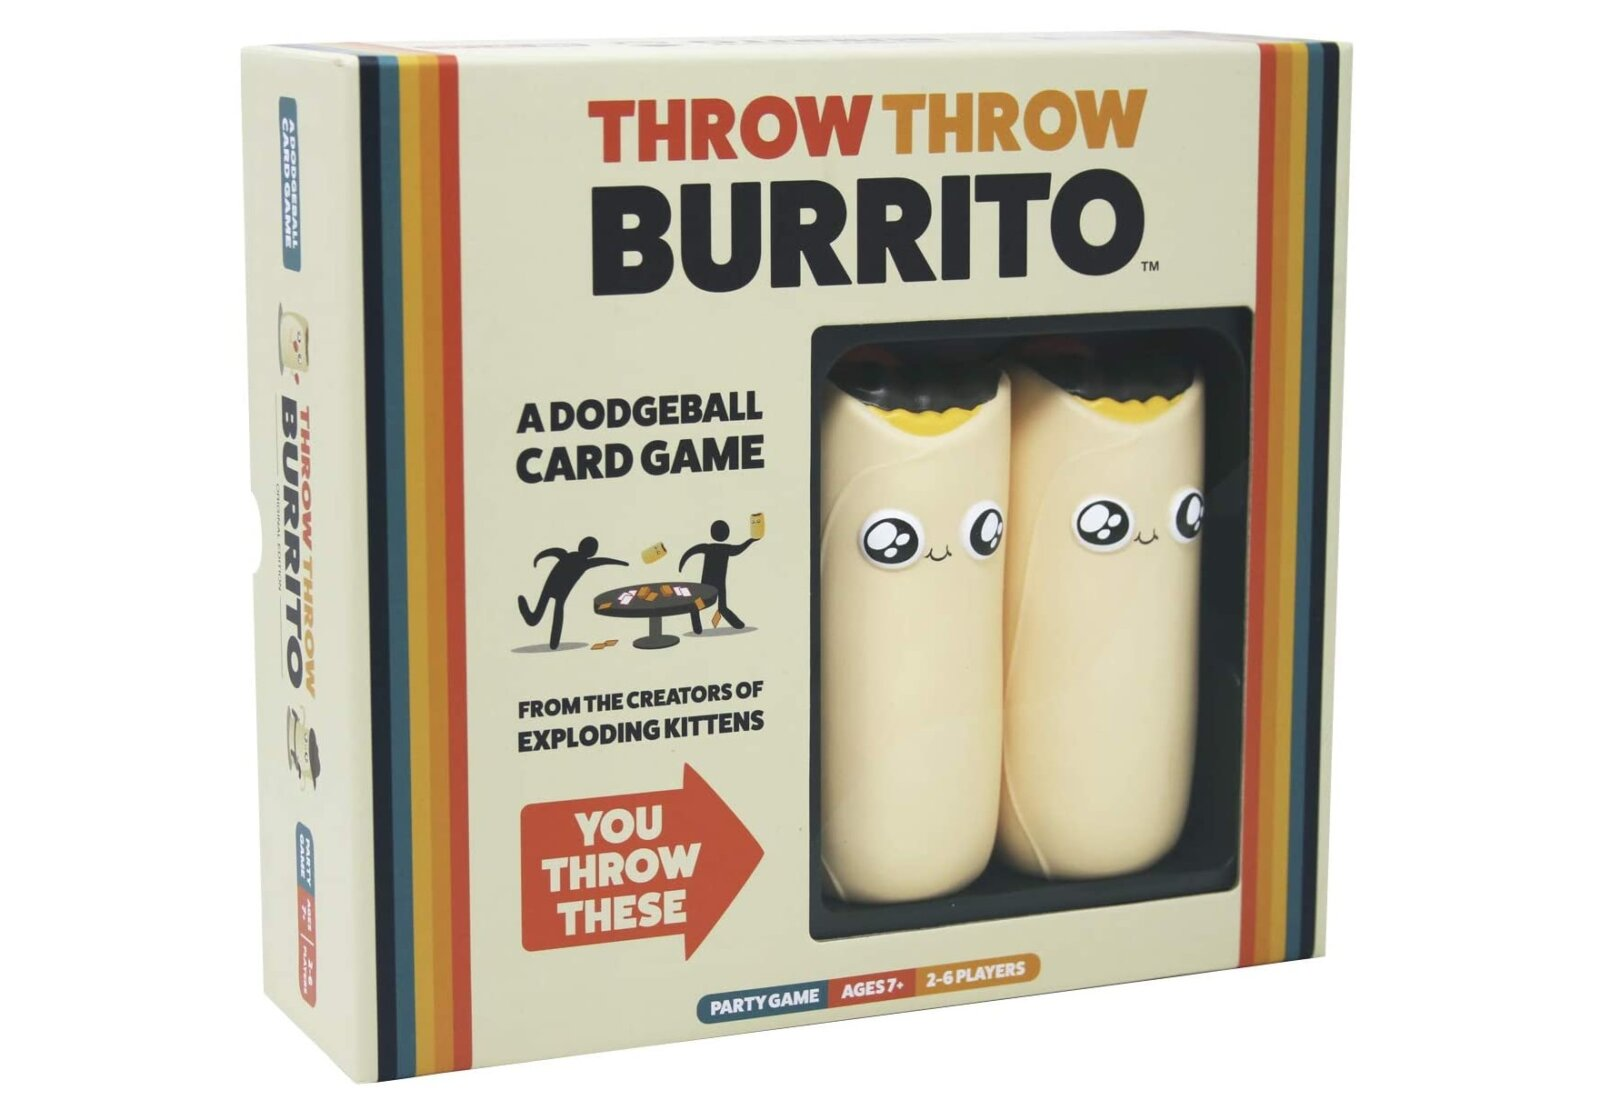 This 'burrito dodgeball' card game could be the most brutal lockdown activity yet, The Manc